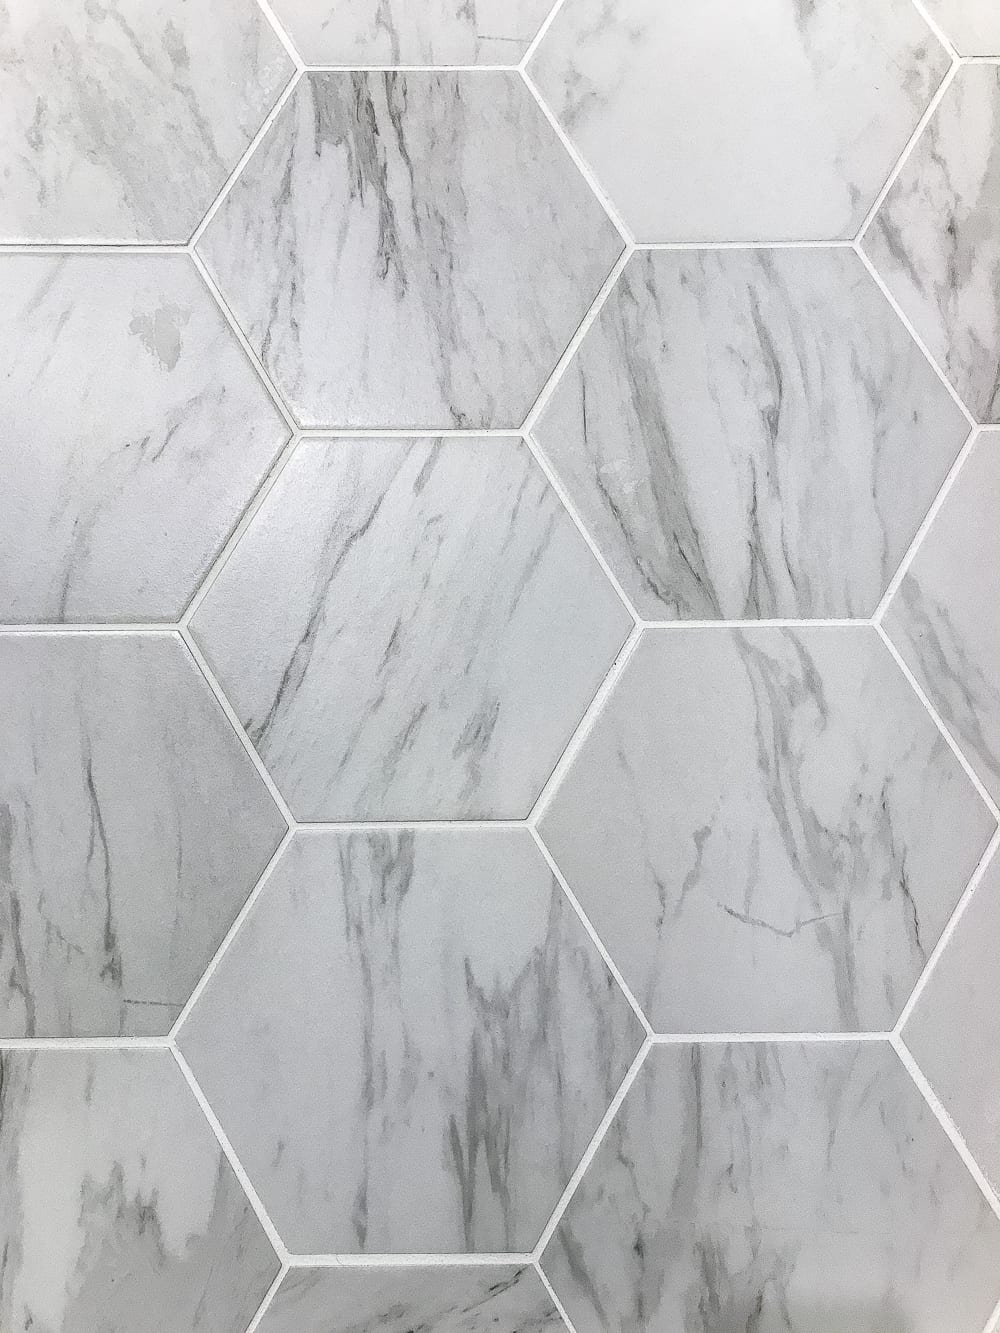 Powder room makeover faux marble tile floor blesser house the best faux marble tile blesserhouse a dated powder room floor gets dailygadgetfo Images